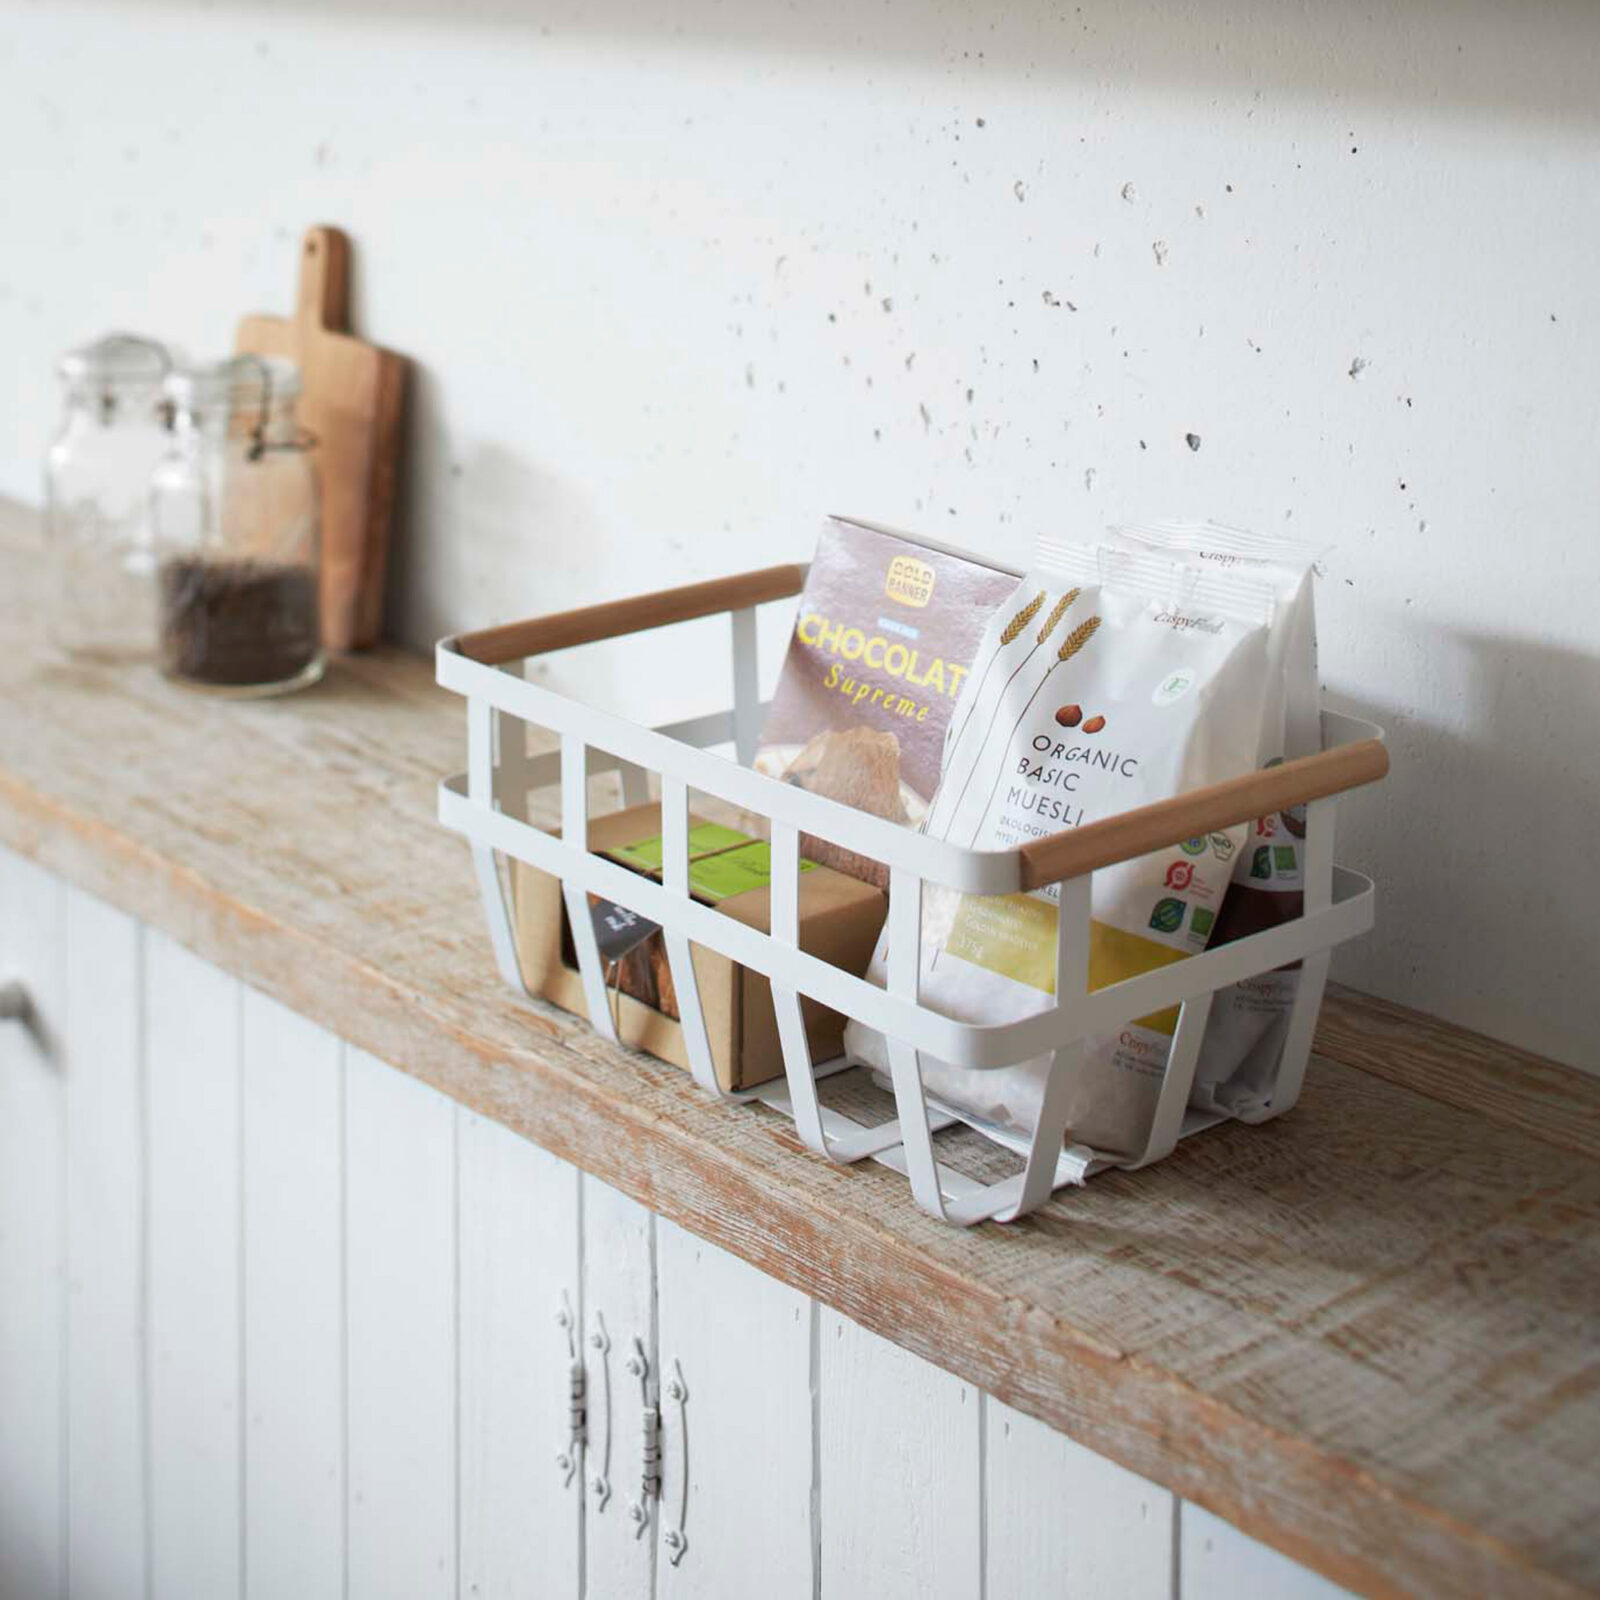 tosca-dual-handle-storage-basket-white-2